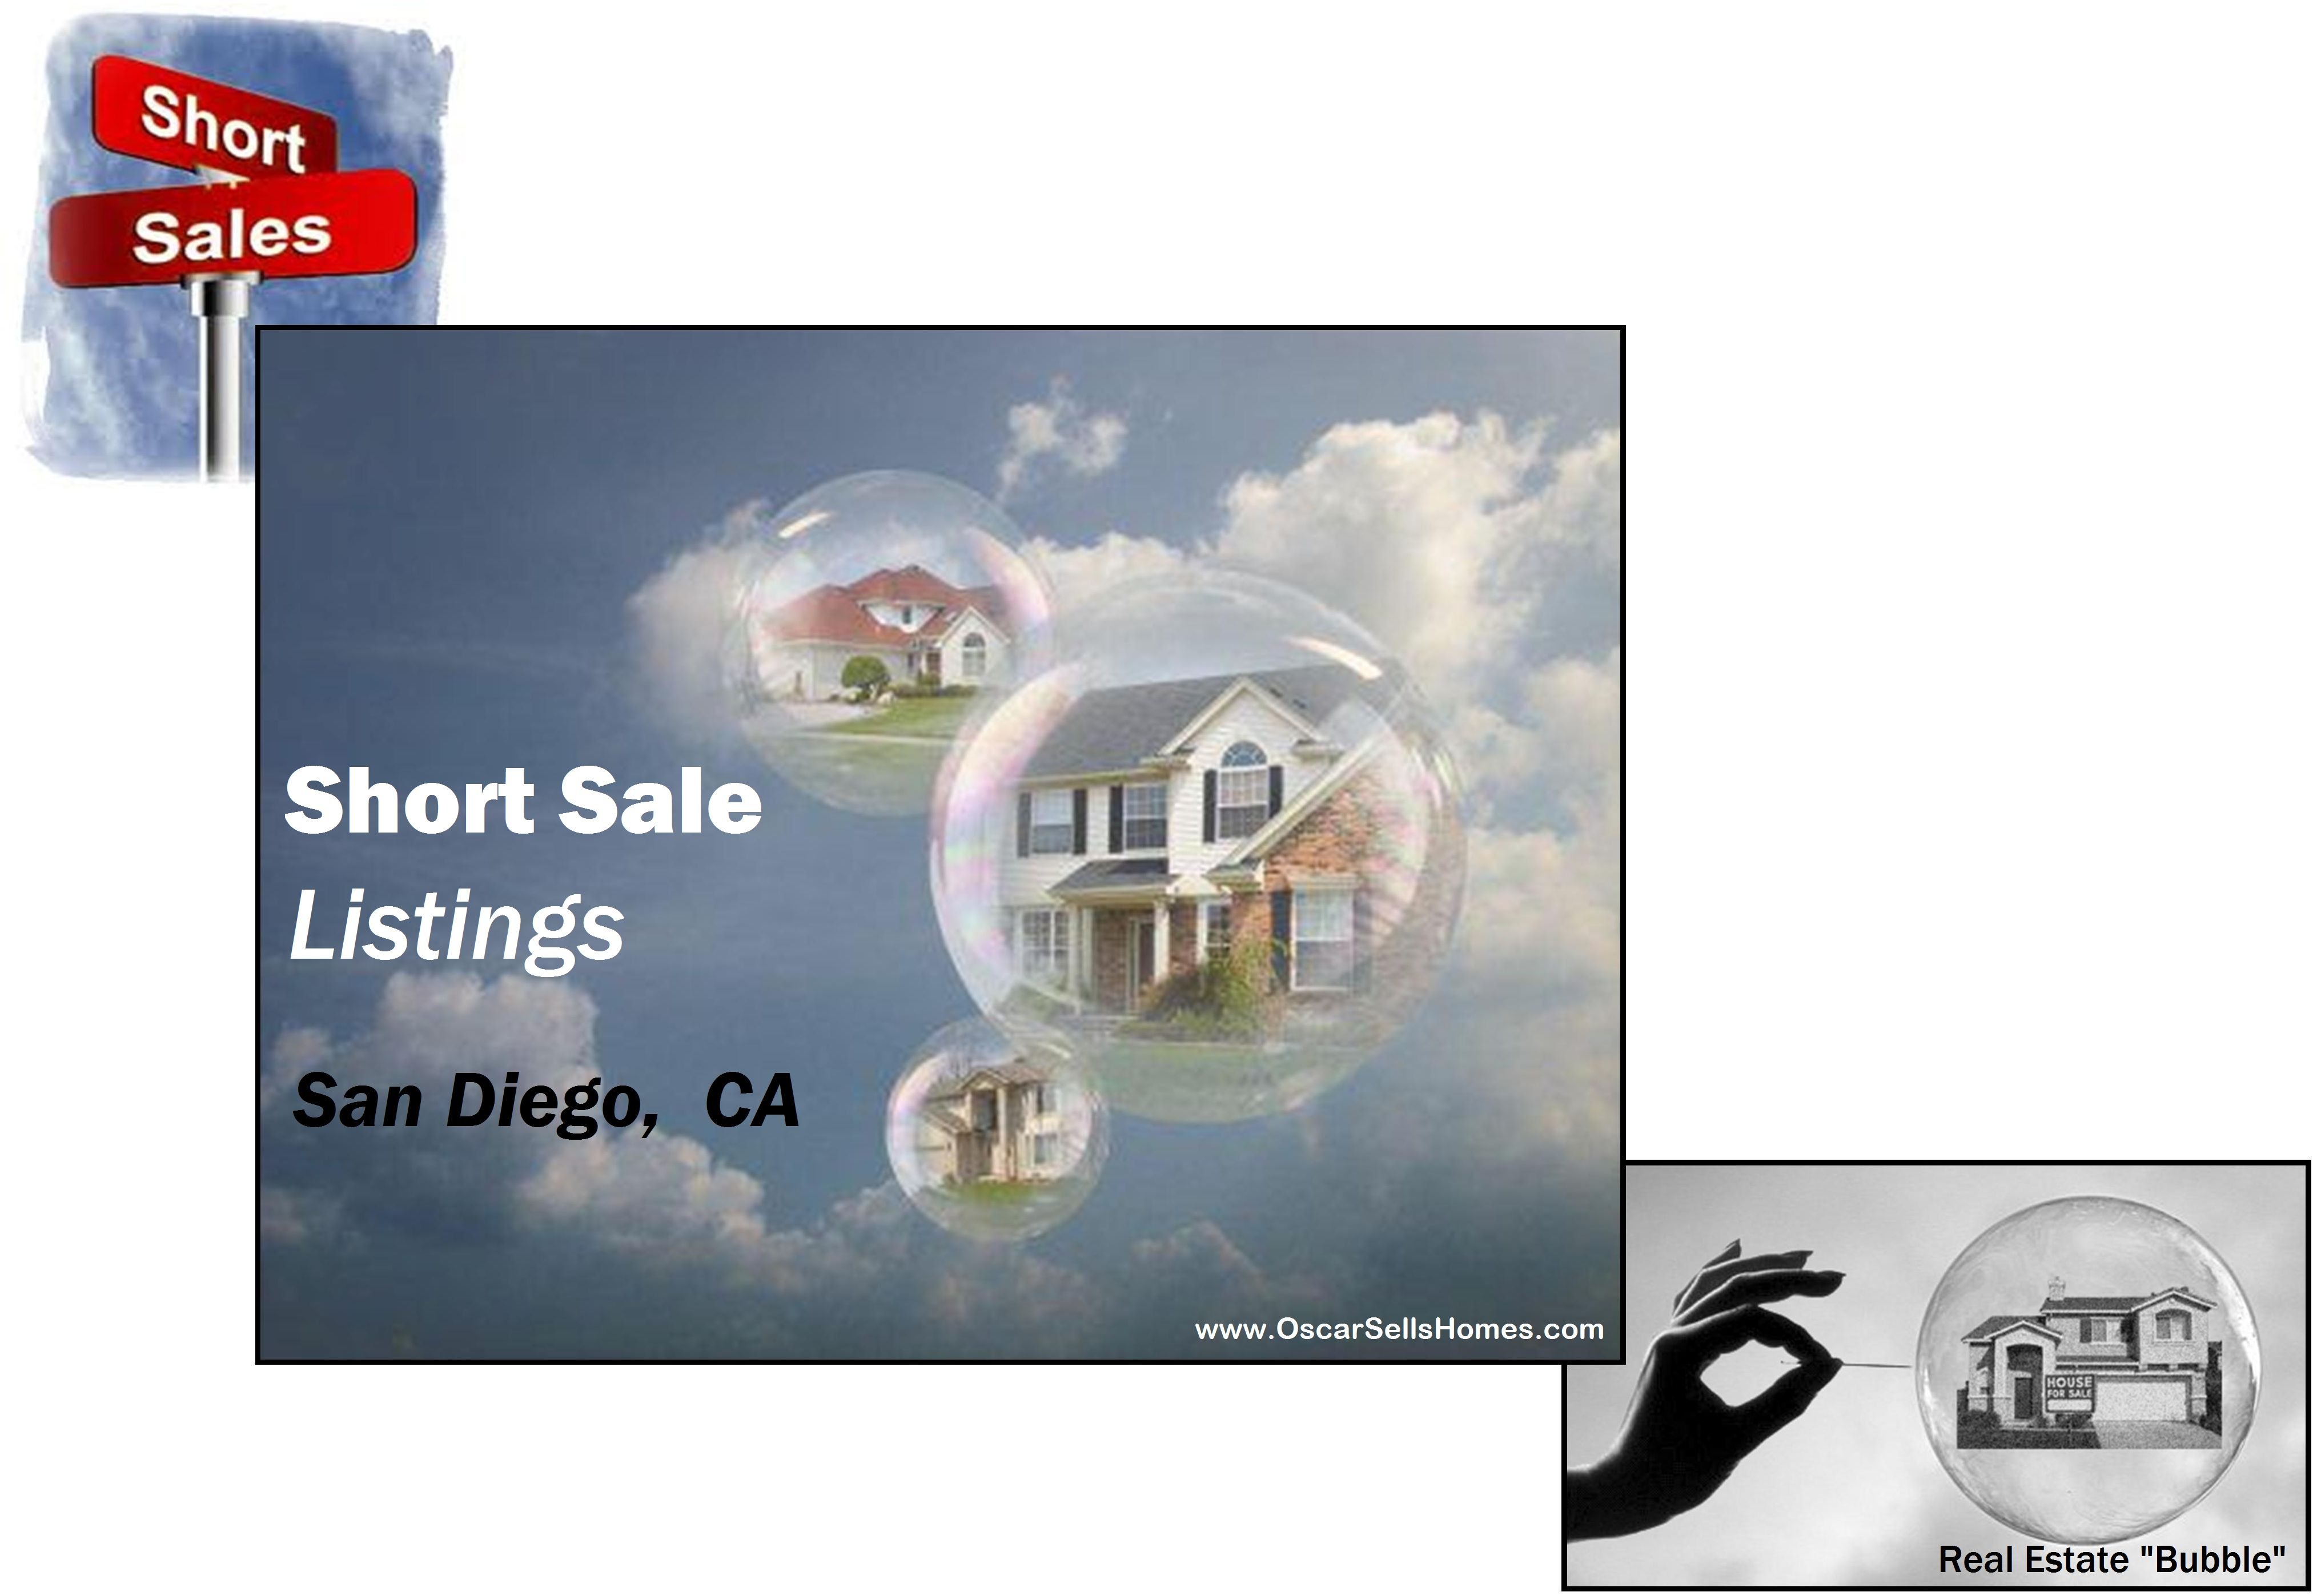 All Homes Listed as Short Sale - Oscar Castillo: Broker Associate REALTOR - San Diego